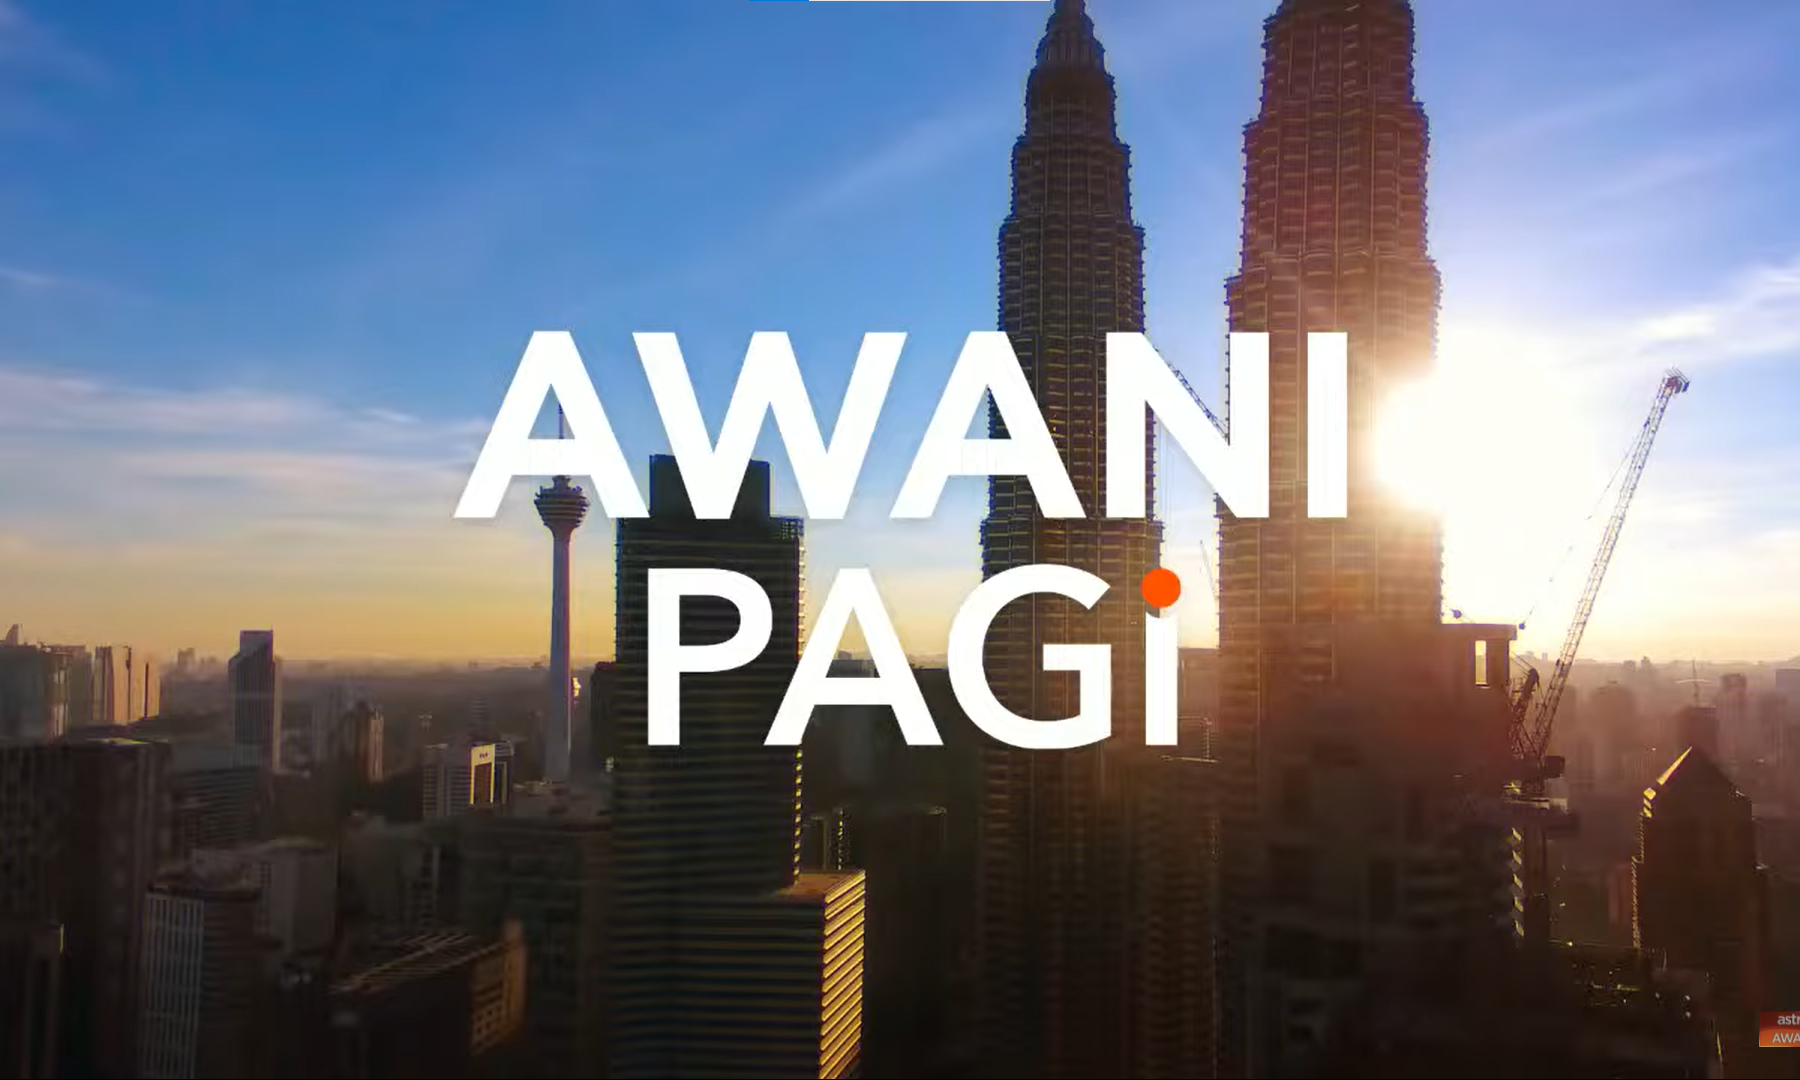 Private capital encouraged to ensure Malaysian businesses are able to rebuild